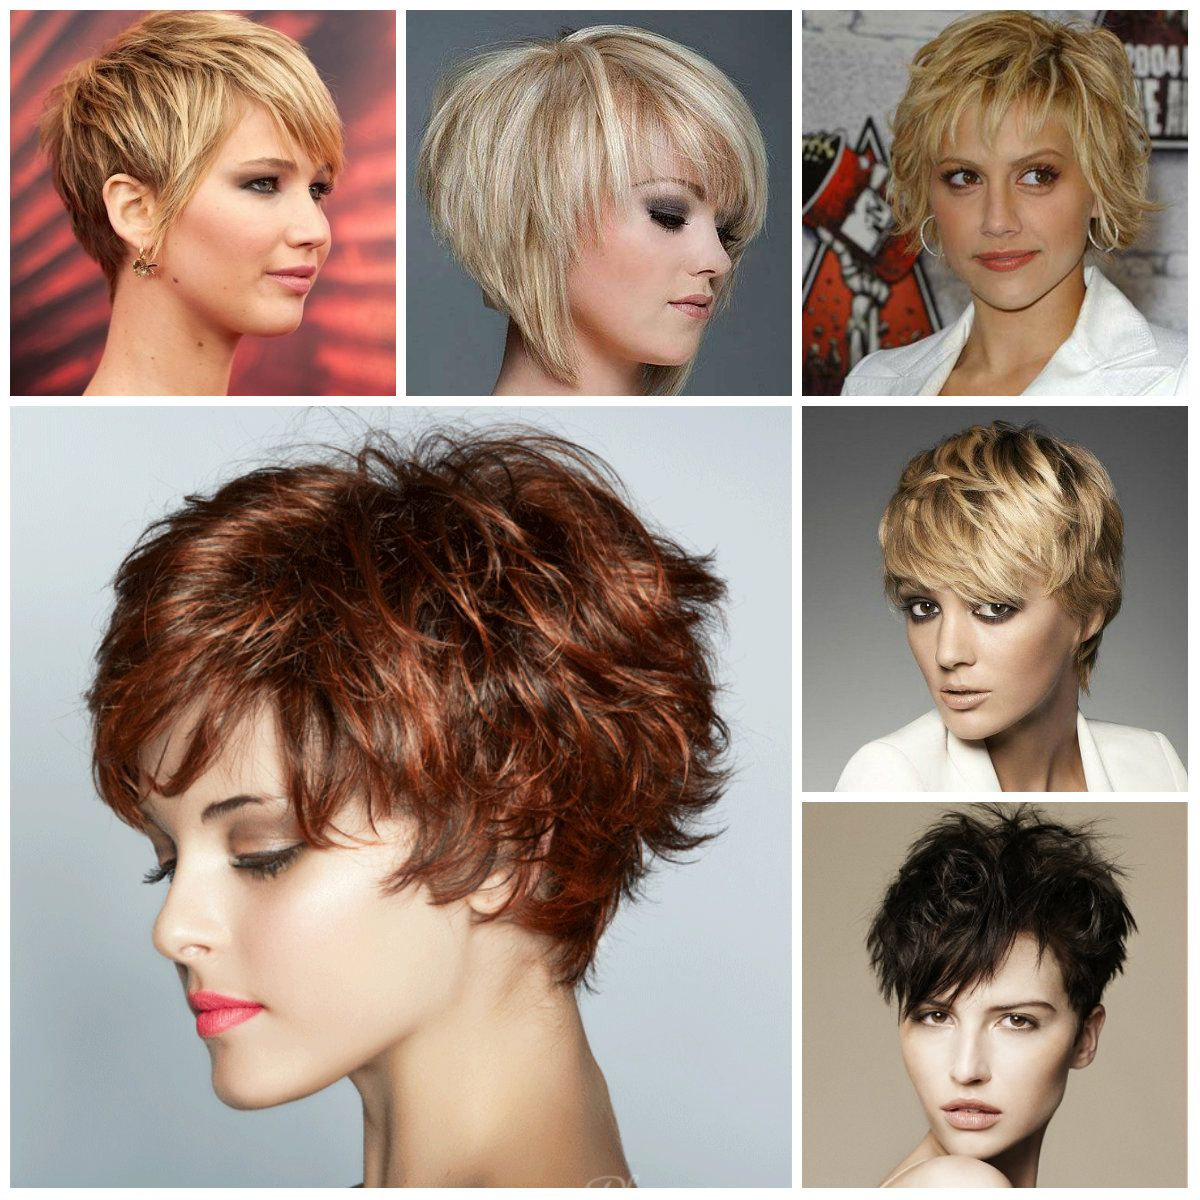 Short Layered Bob Hairstyles 2016 - When.com - Image Results ...